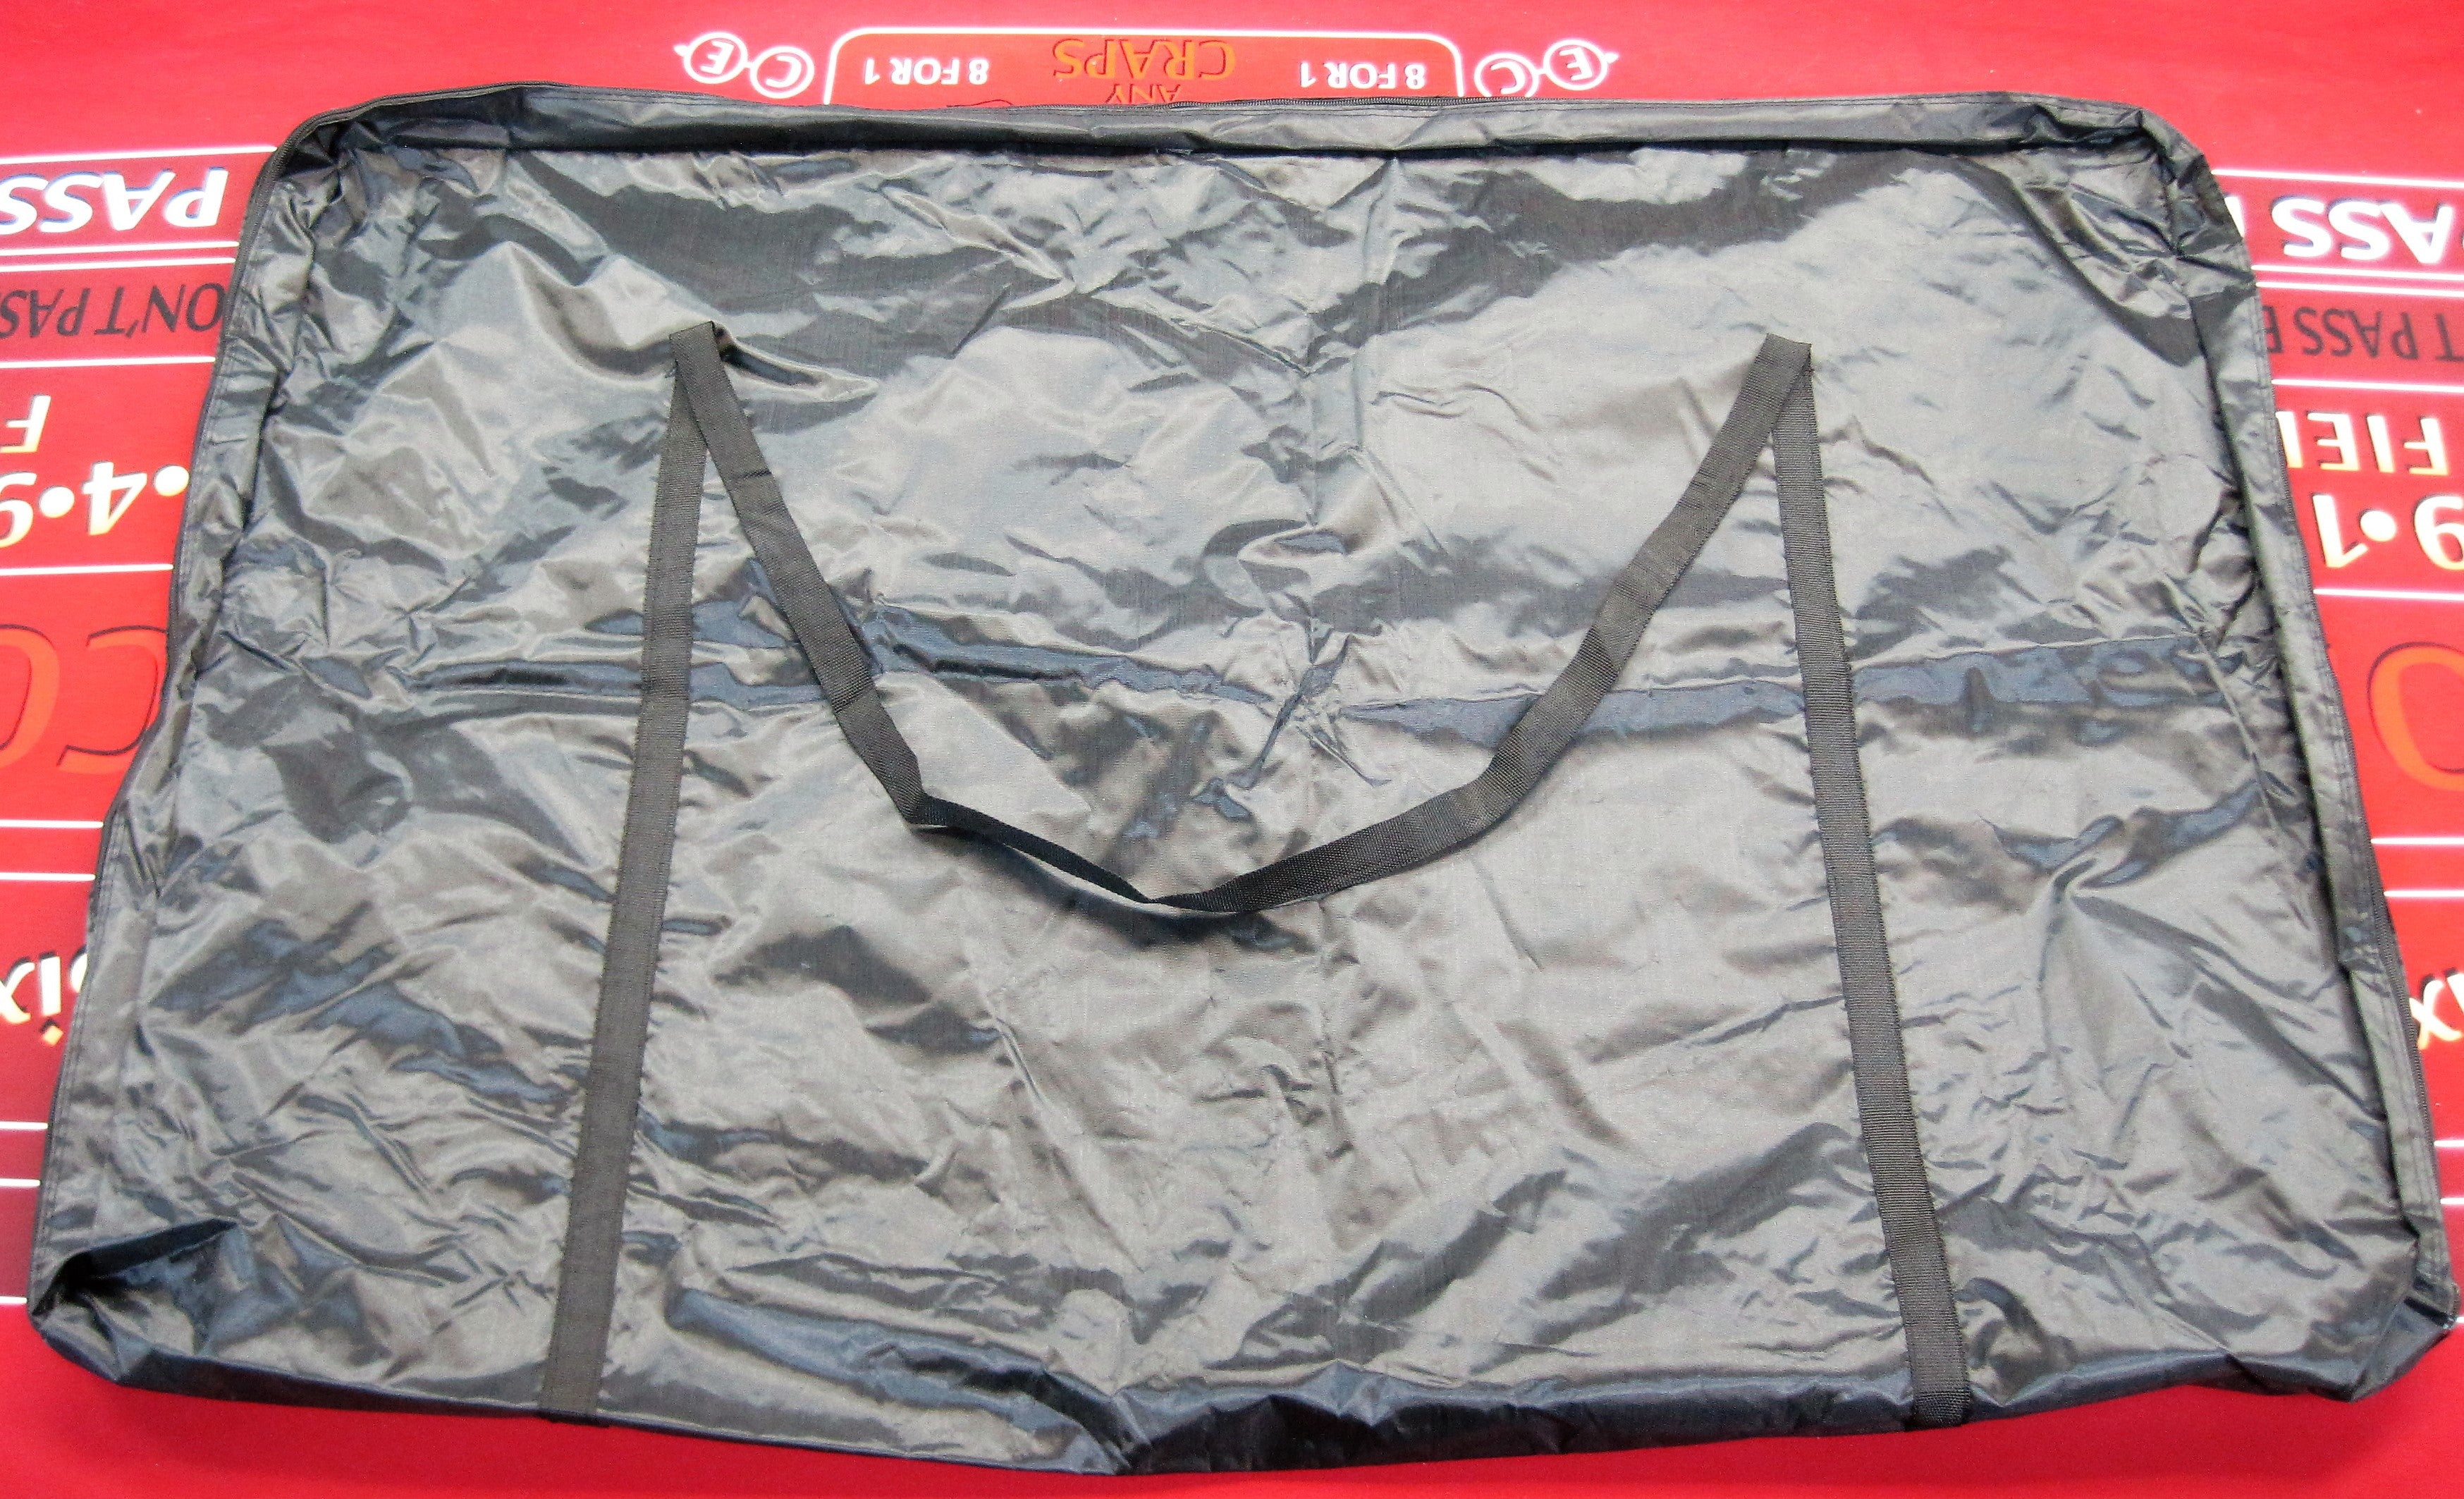 Big Black Carrying Bag - Storage Case with Zipper - Great for Multiple Uses